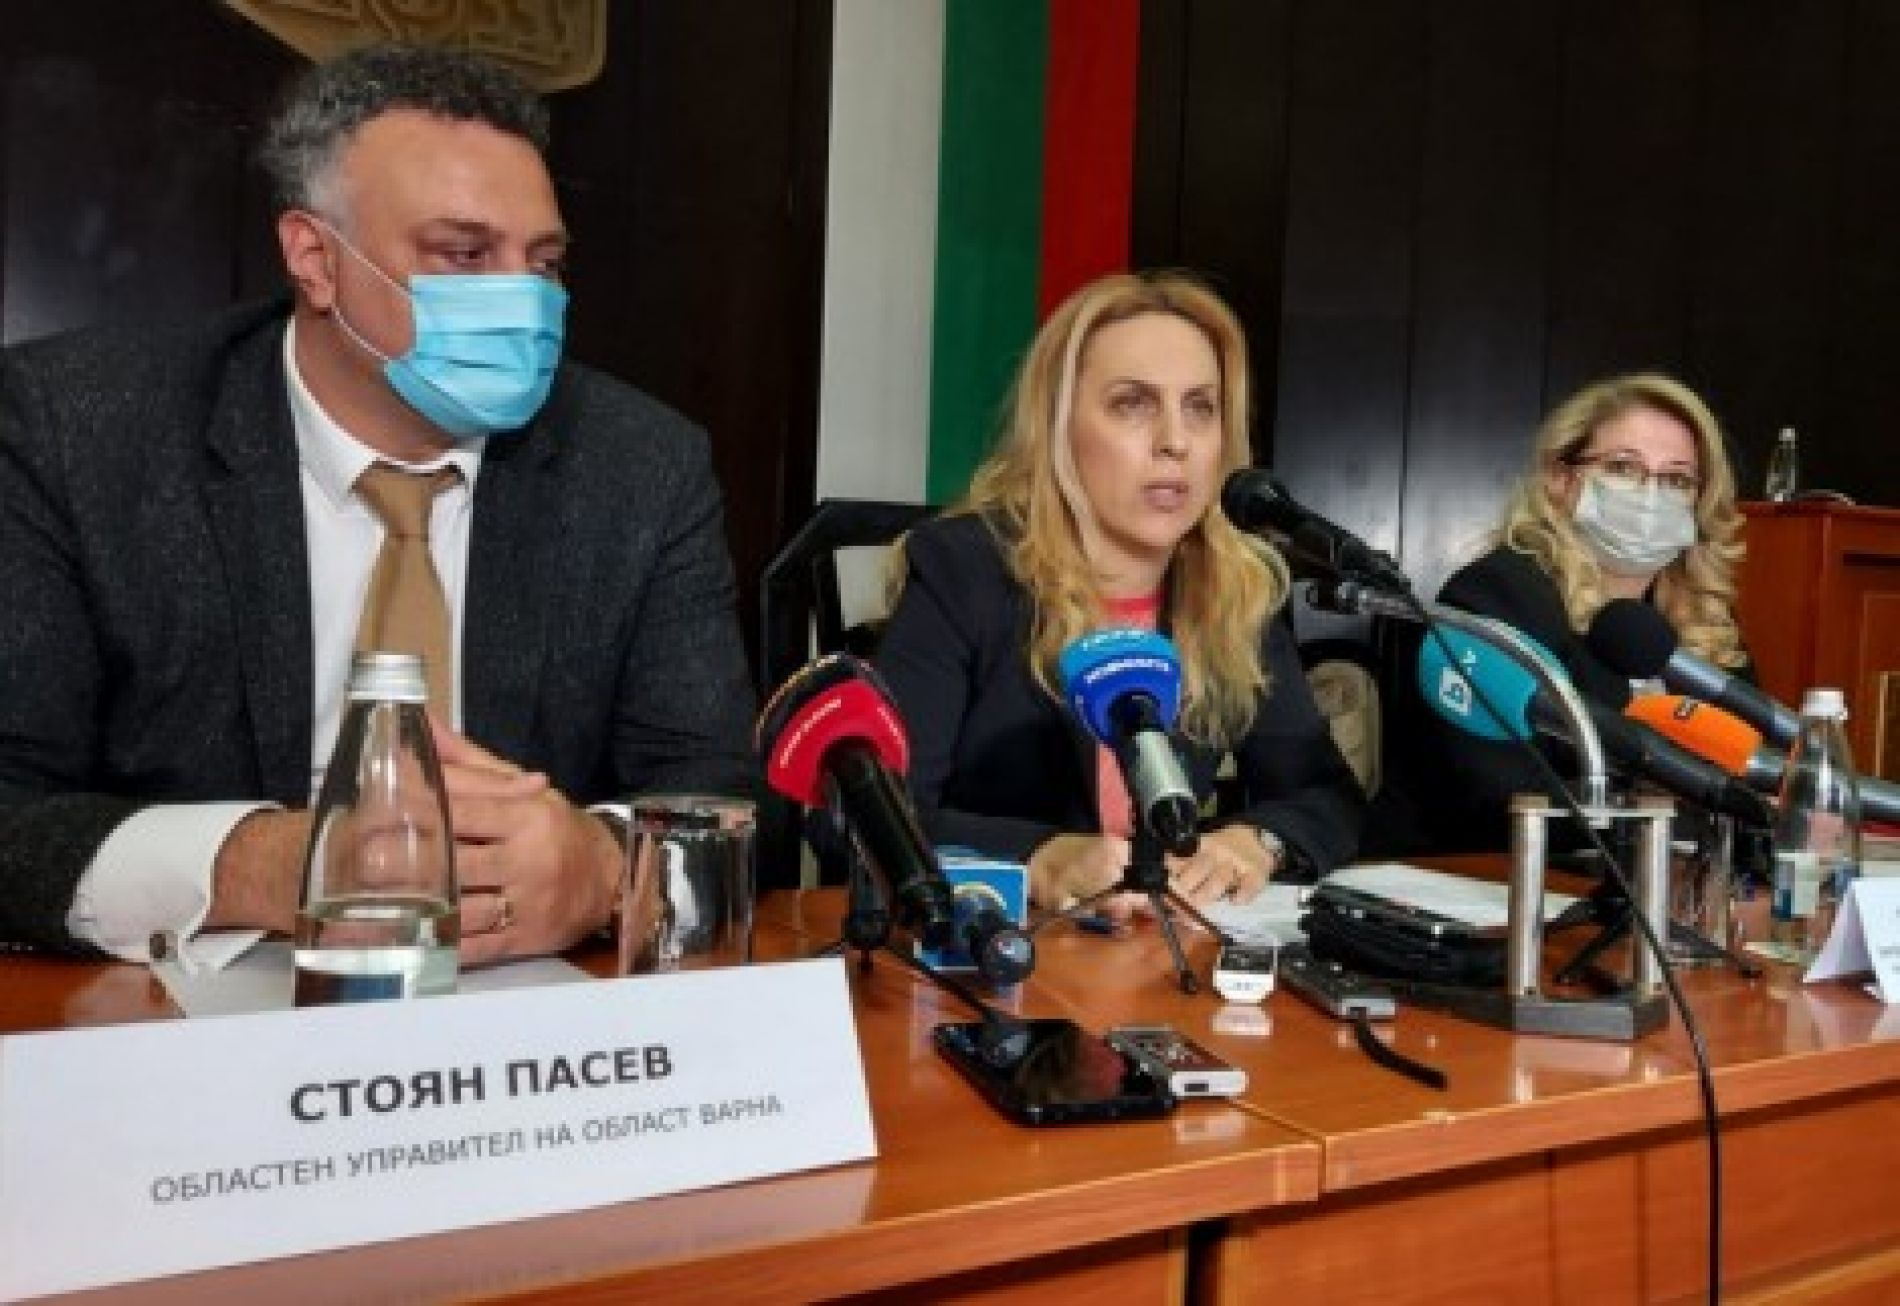 There are three options for facilitating the entry of foreign tourists to Bulgaria